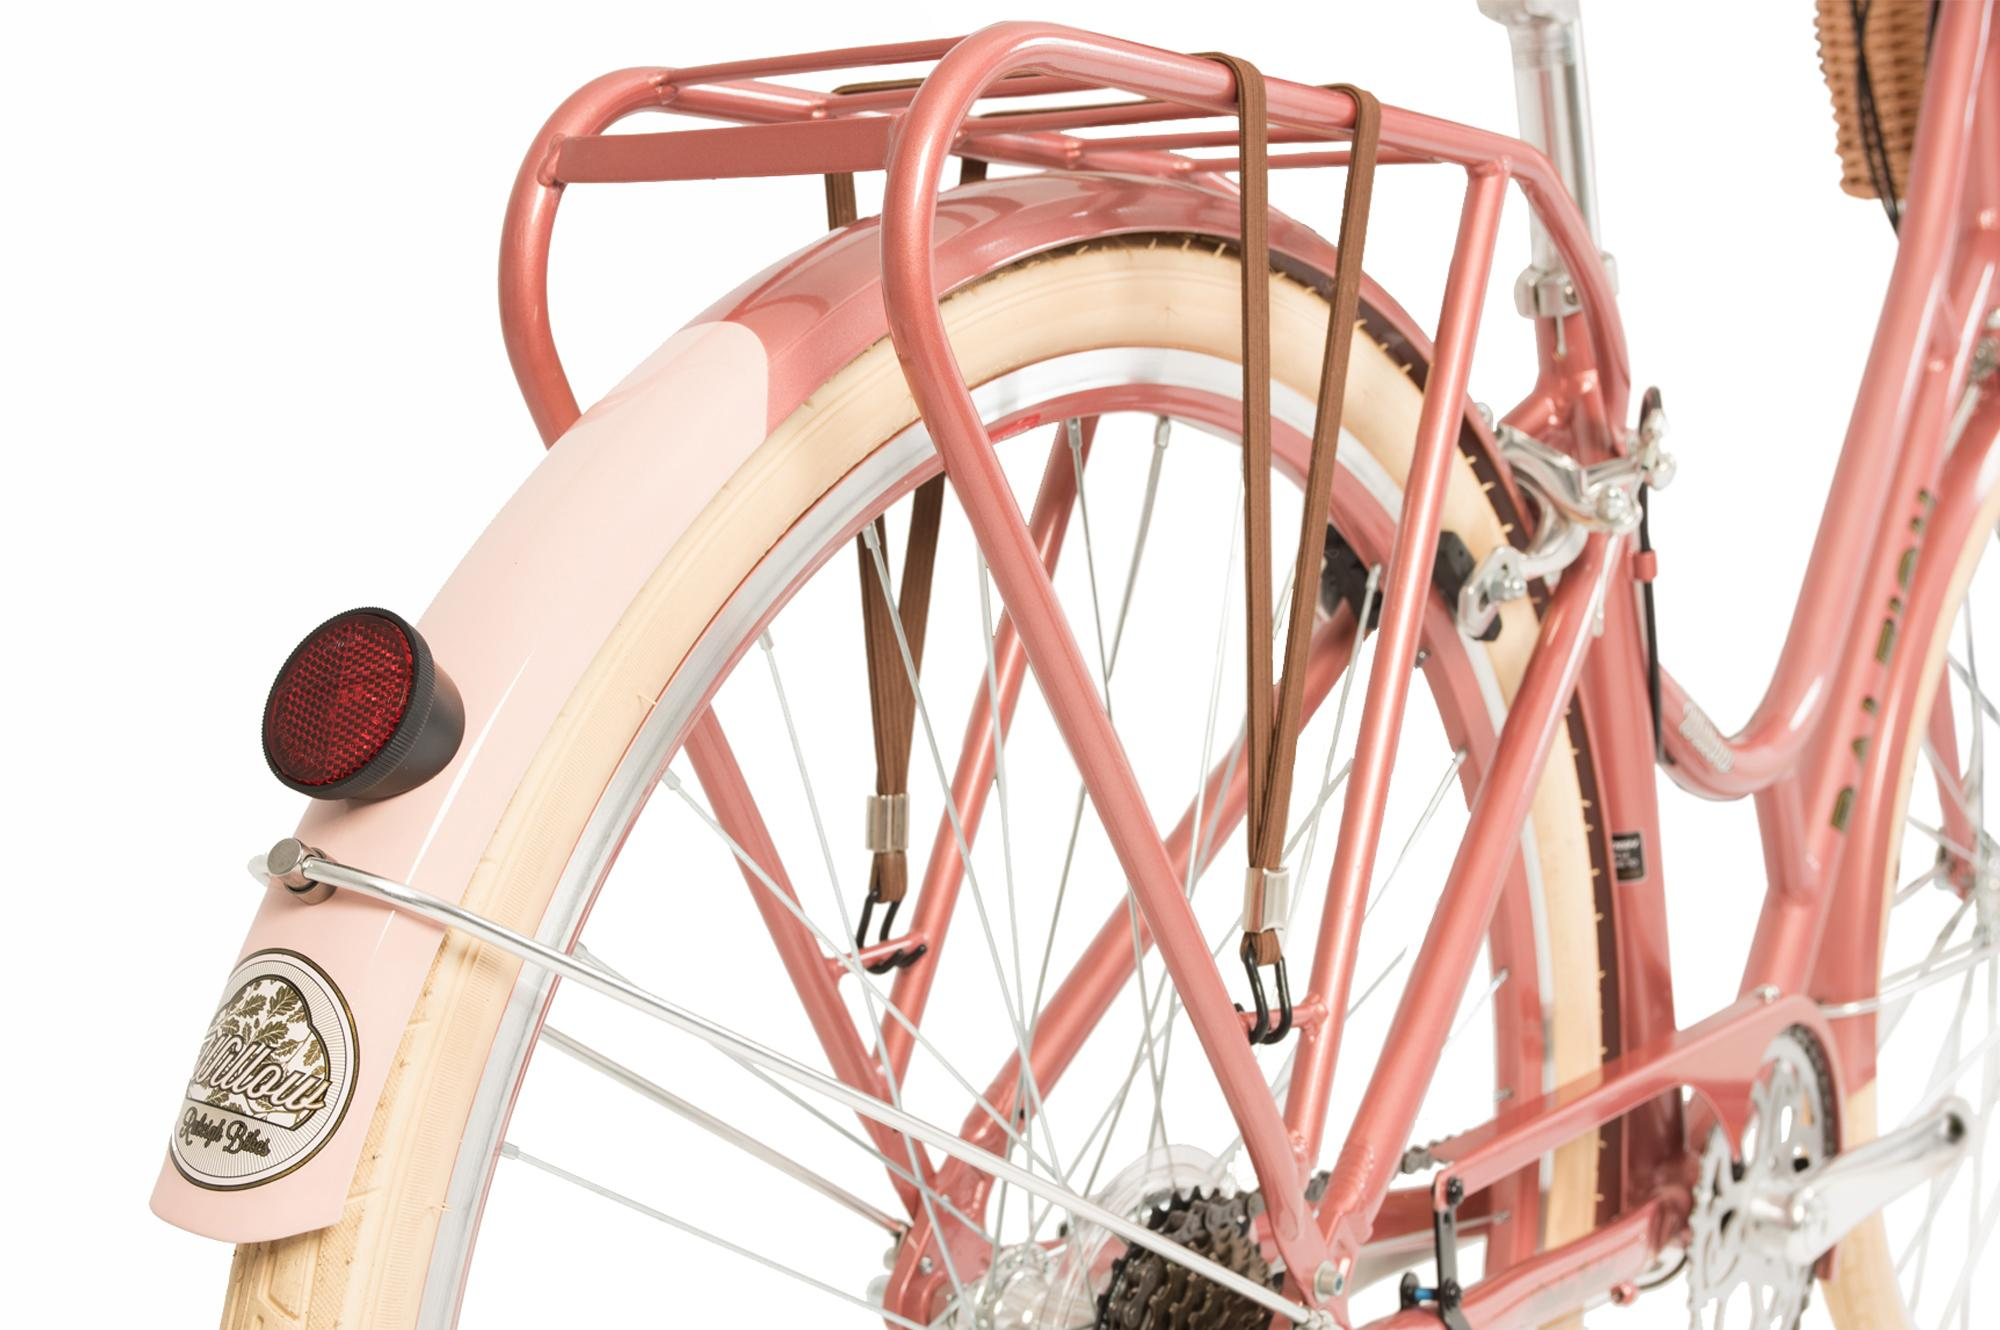 Rear mudguard and luggage rack on the Raleigh Willow classic ladies bike